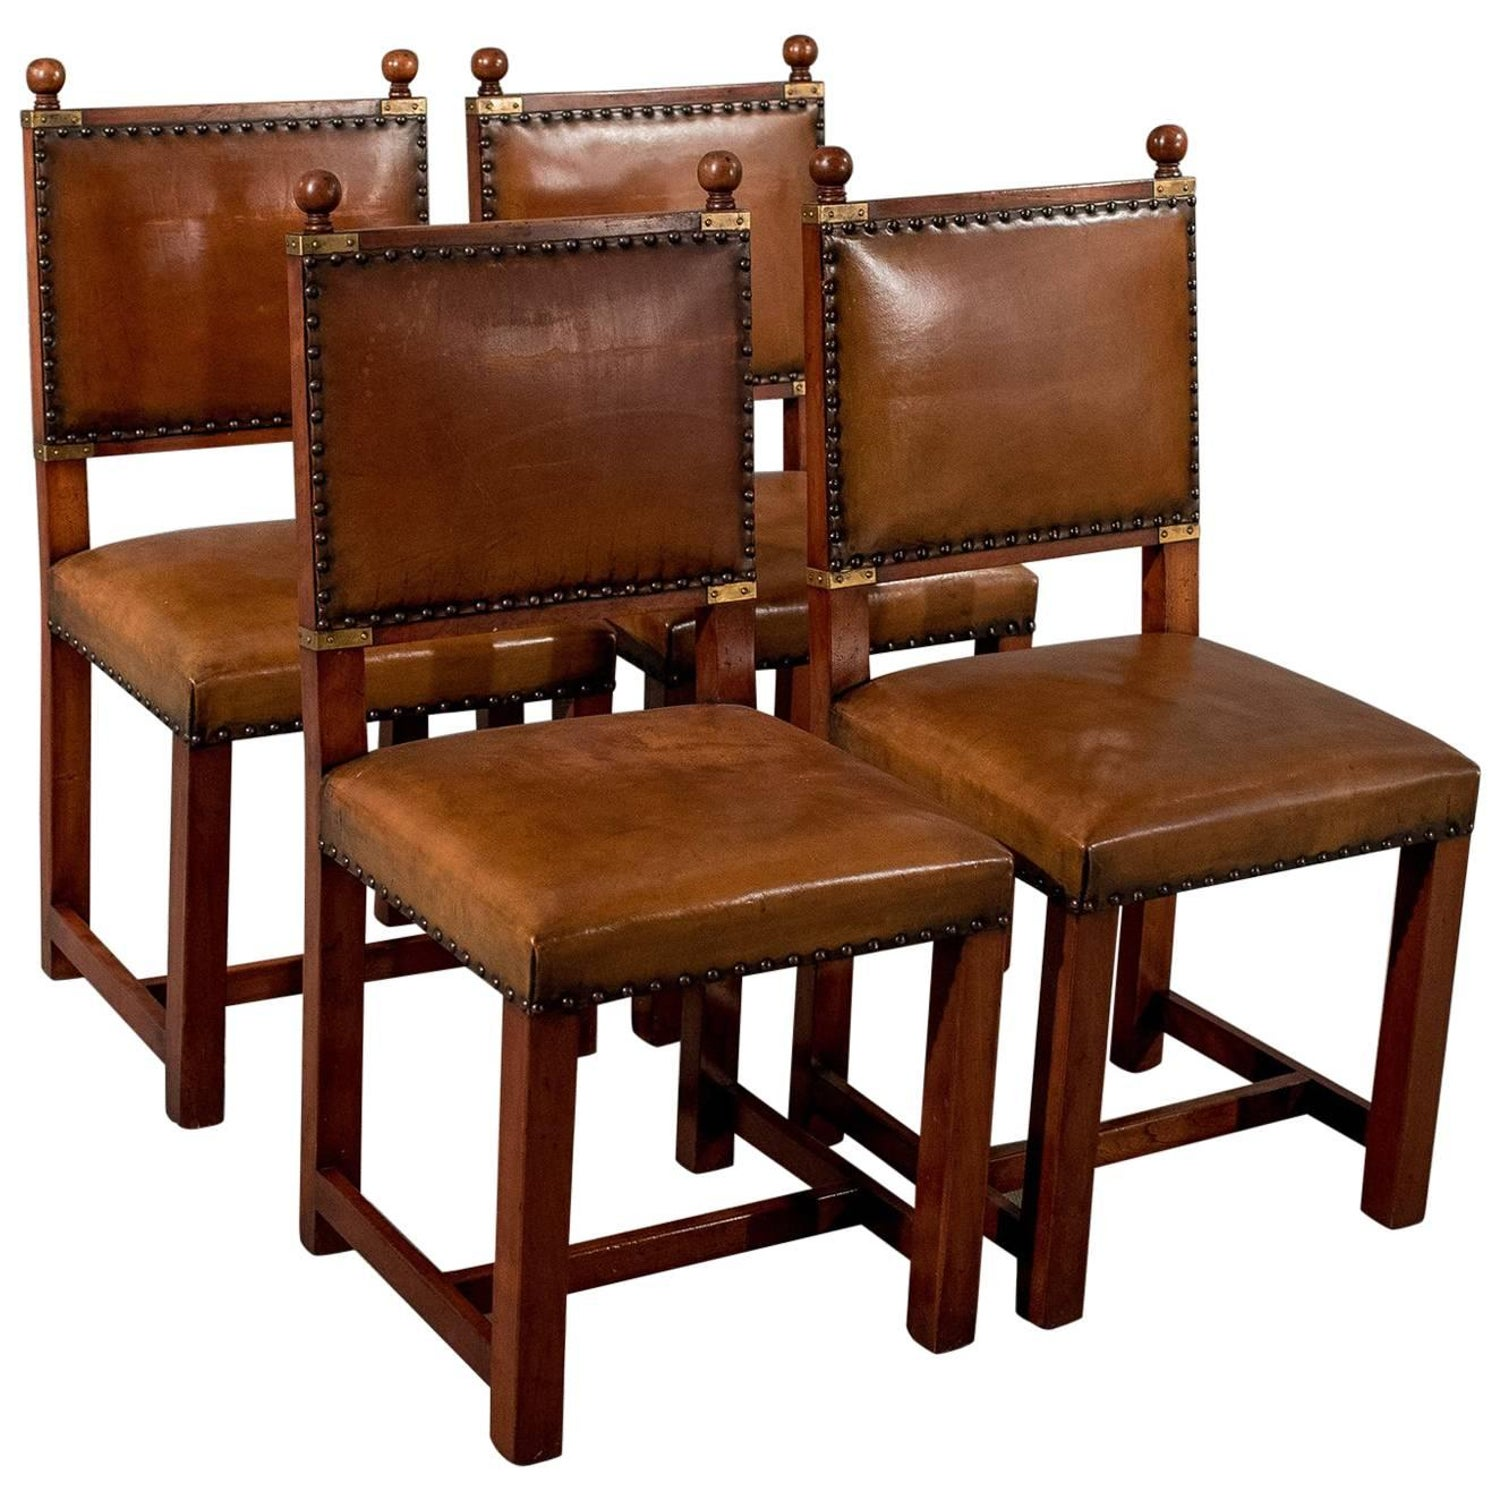 Antique Oak and Leather Set Four Dining Kitchen Chairs Comfy and Quality at  1stdibs - Antique Oak And Leather Set Four Dining Kitchen Chairs Comfy And